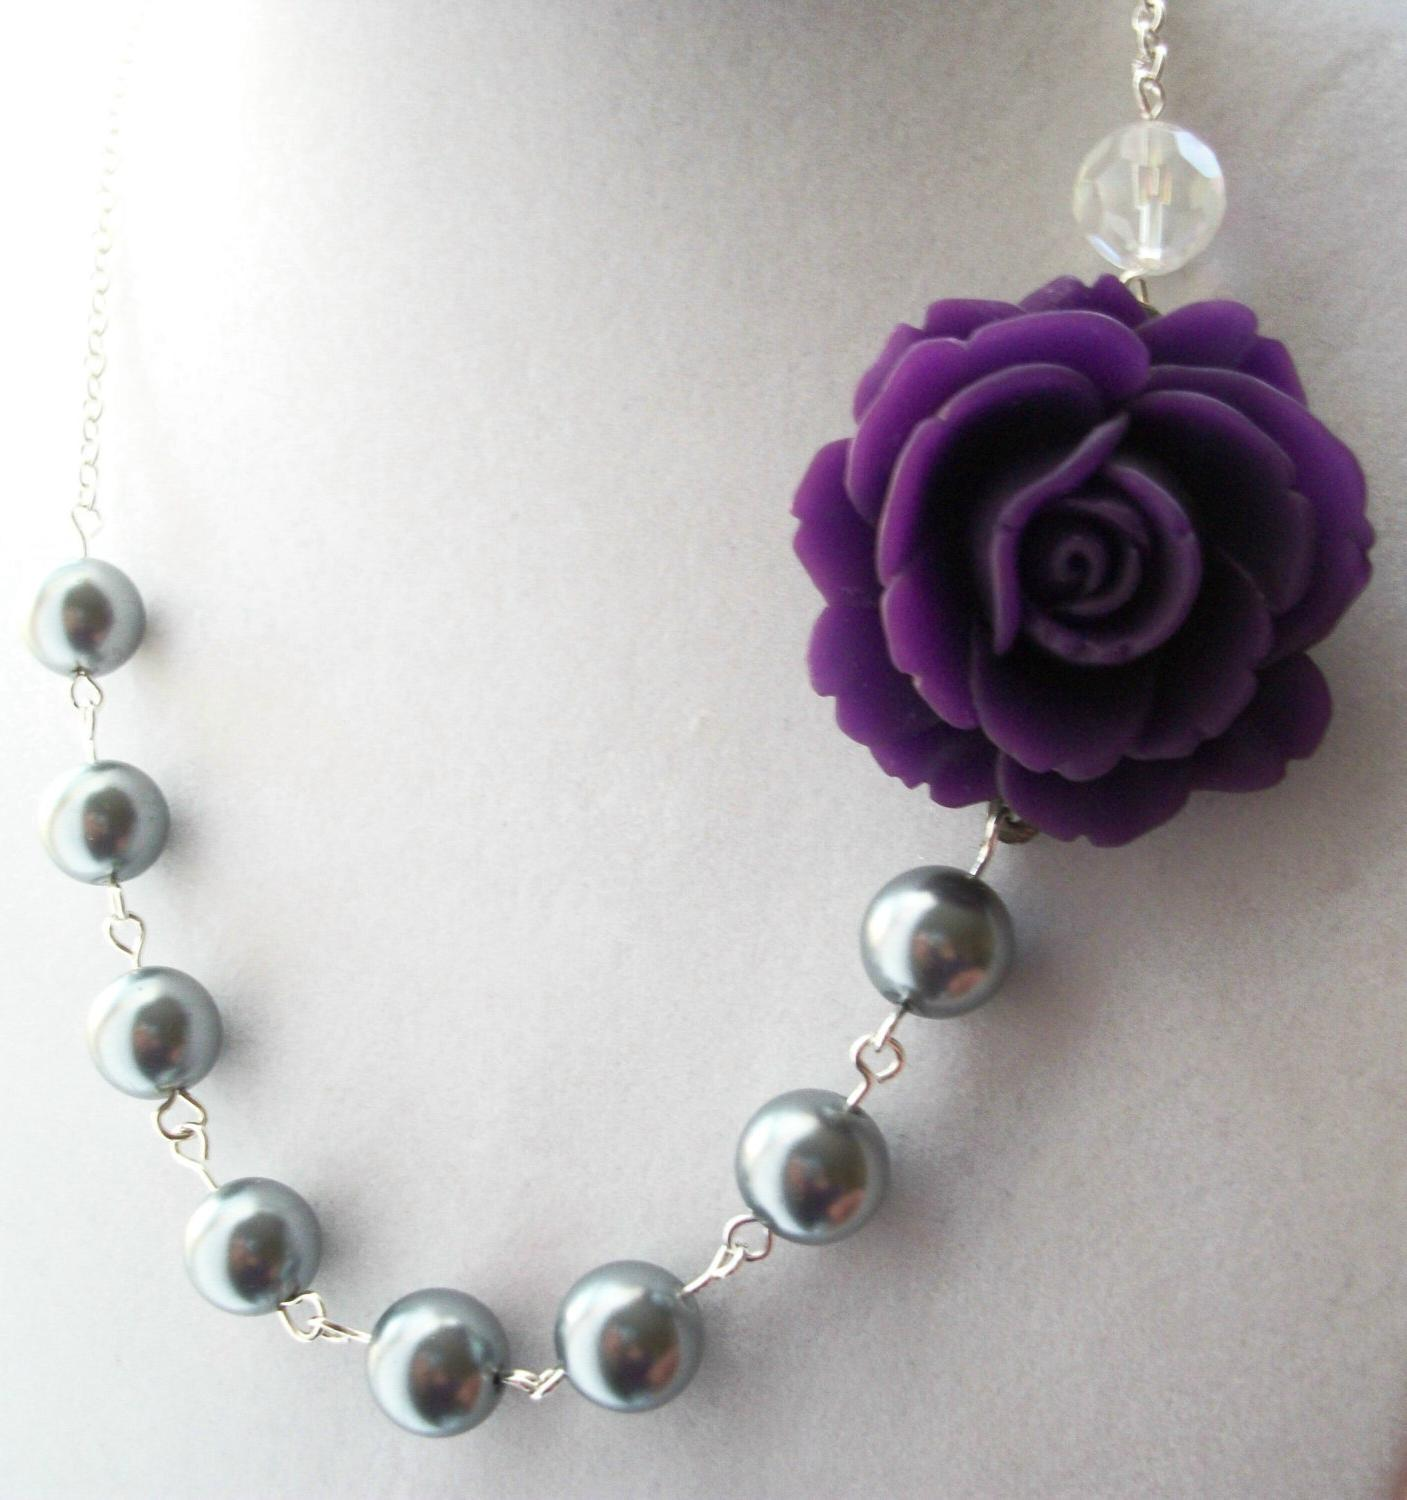 SALE - Amethyst Purple Rose